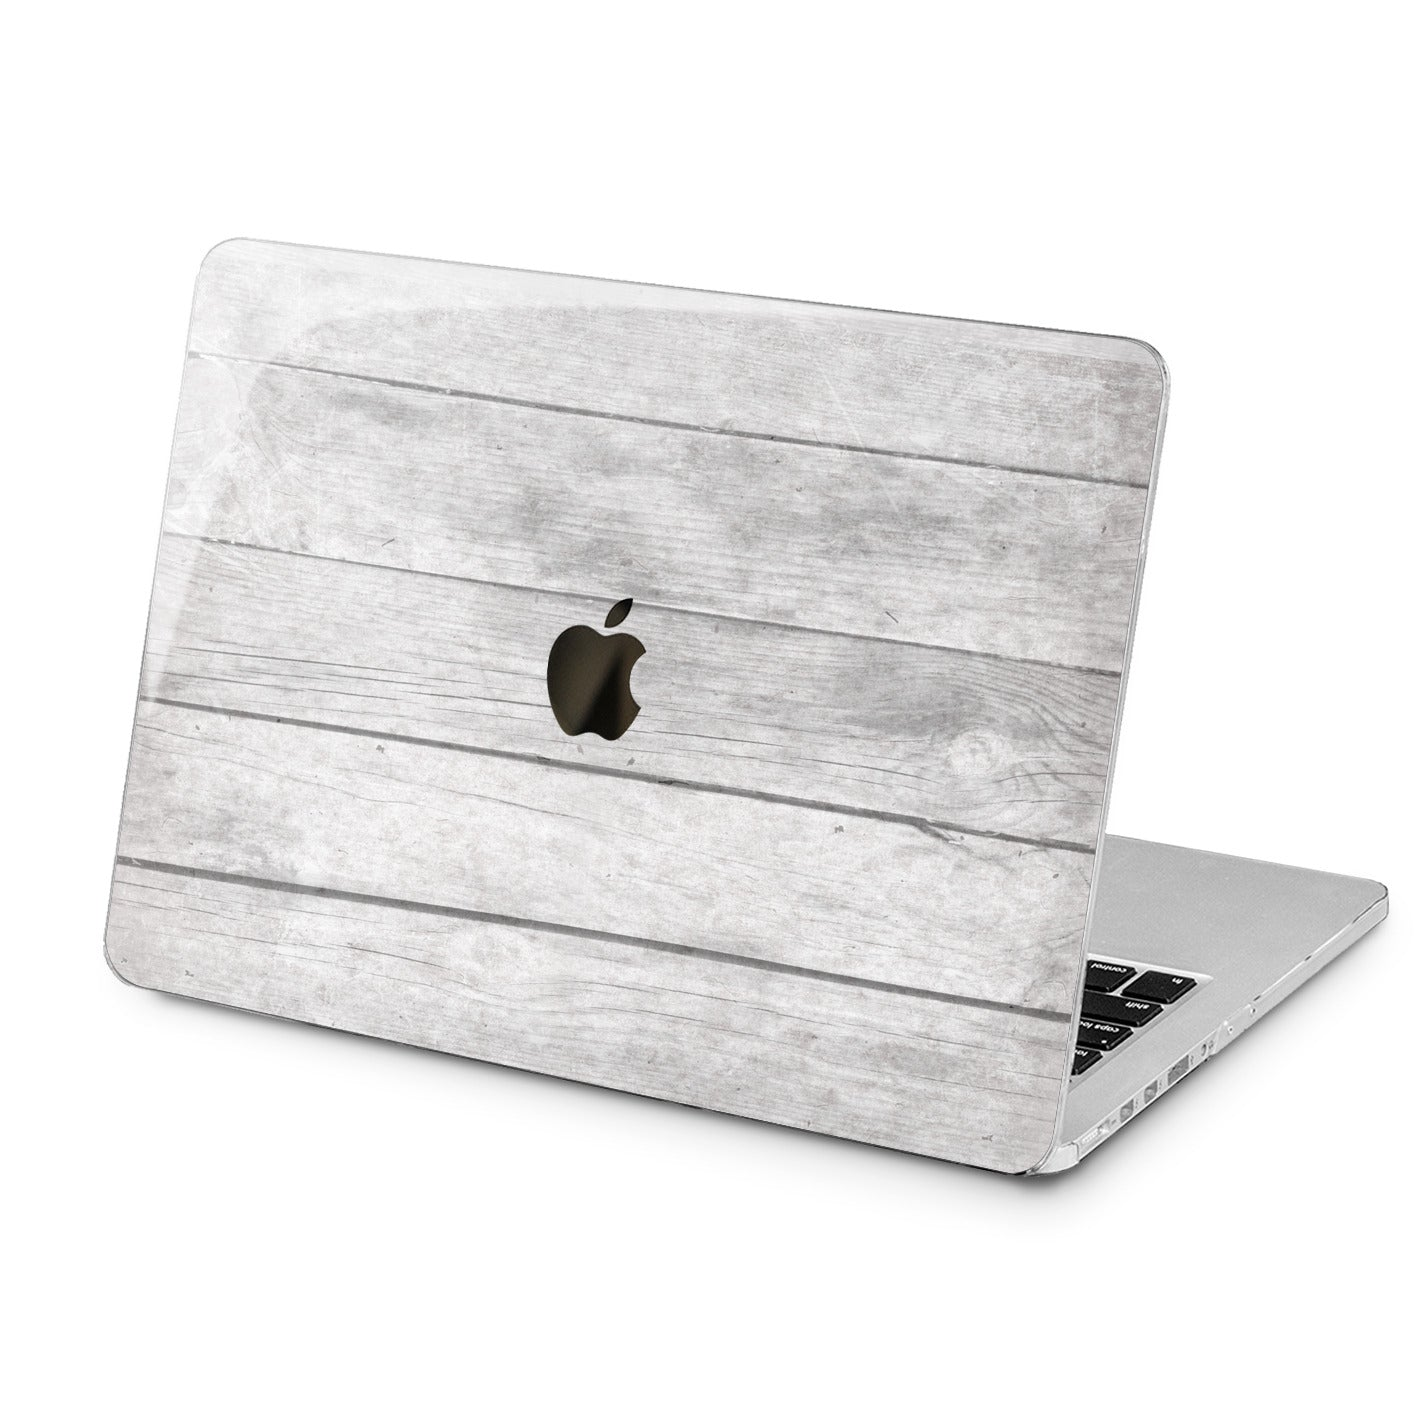 Lex Altern Lex Altern Loft Theme Case for your Laptop Apple Macbook.